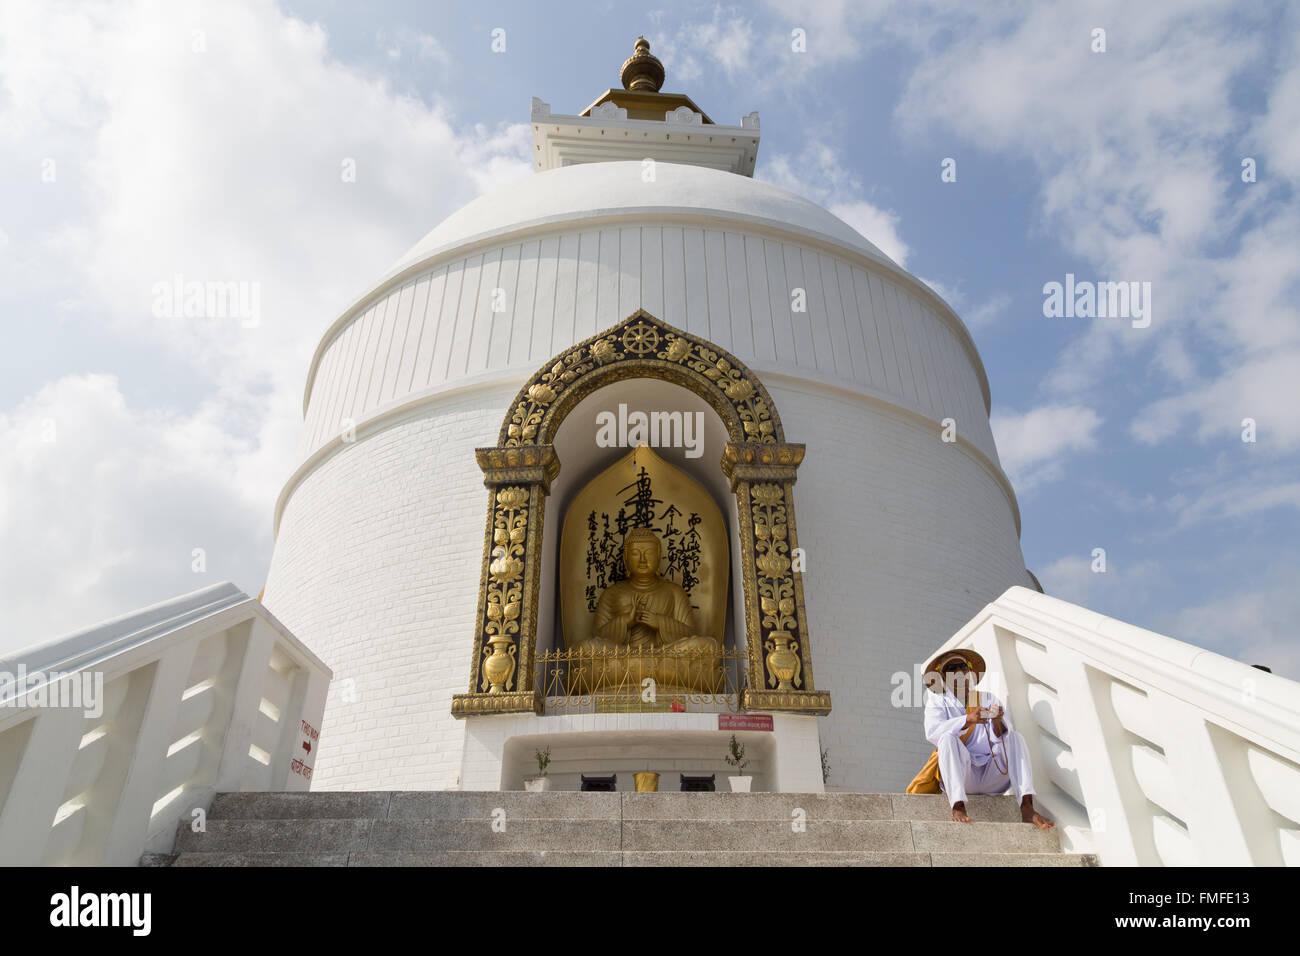 Photograph of the World Peace Pagoda in Pokhara, Nepal. - Stock Image